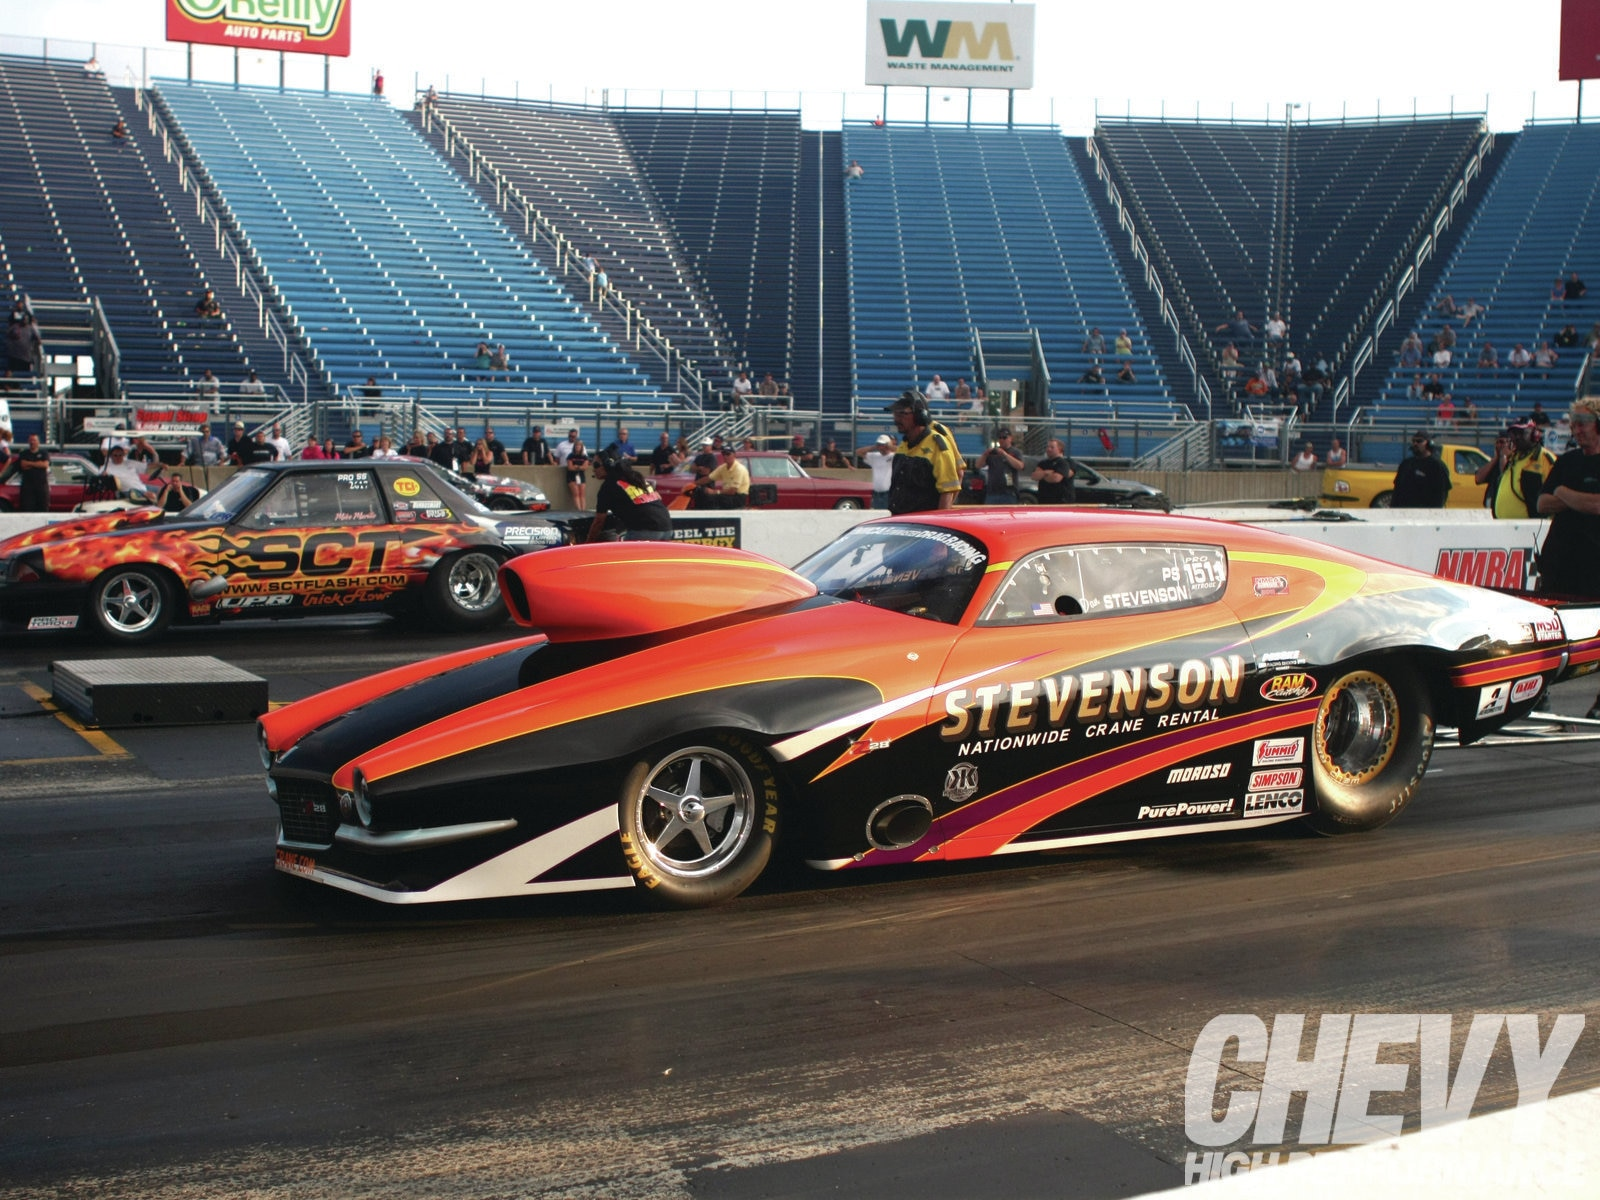 NMCA Drag Racing - Civil War